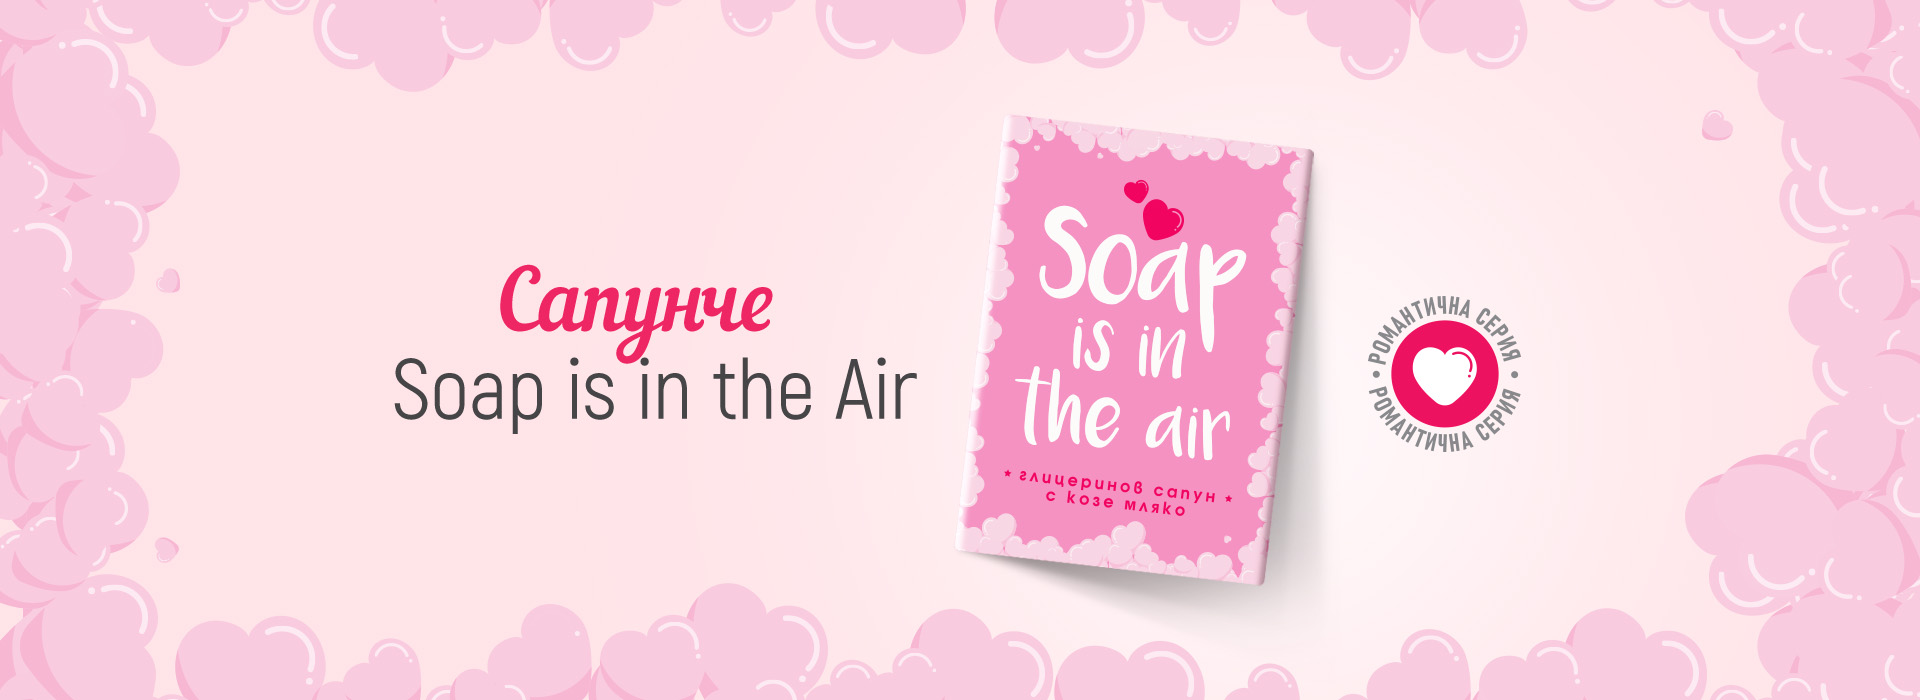 soap in the air